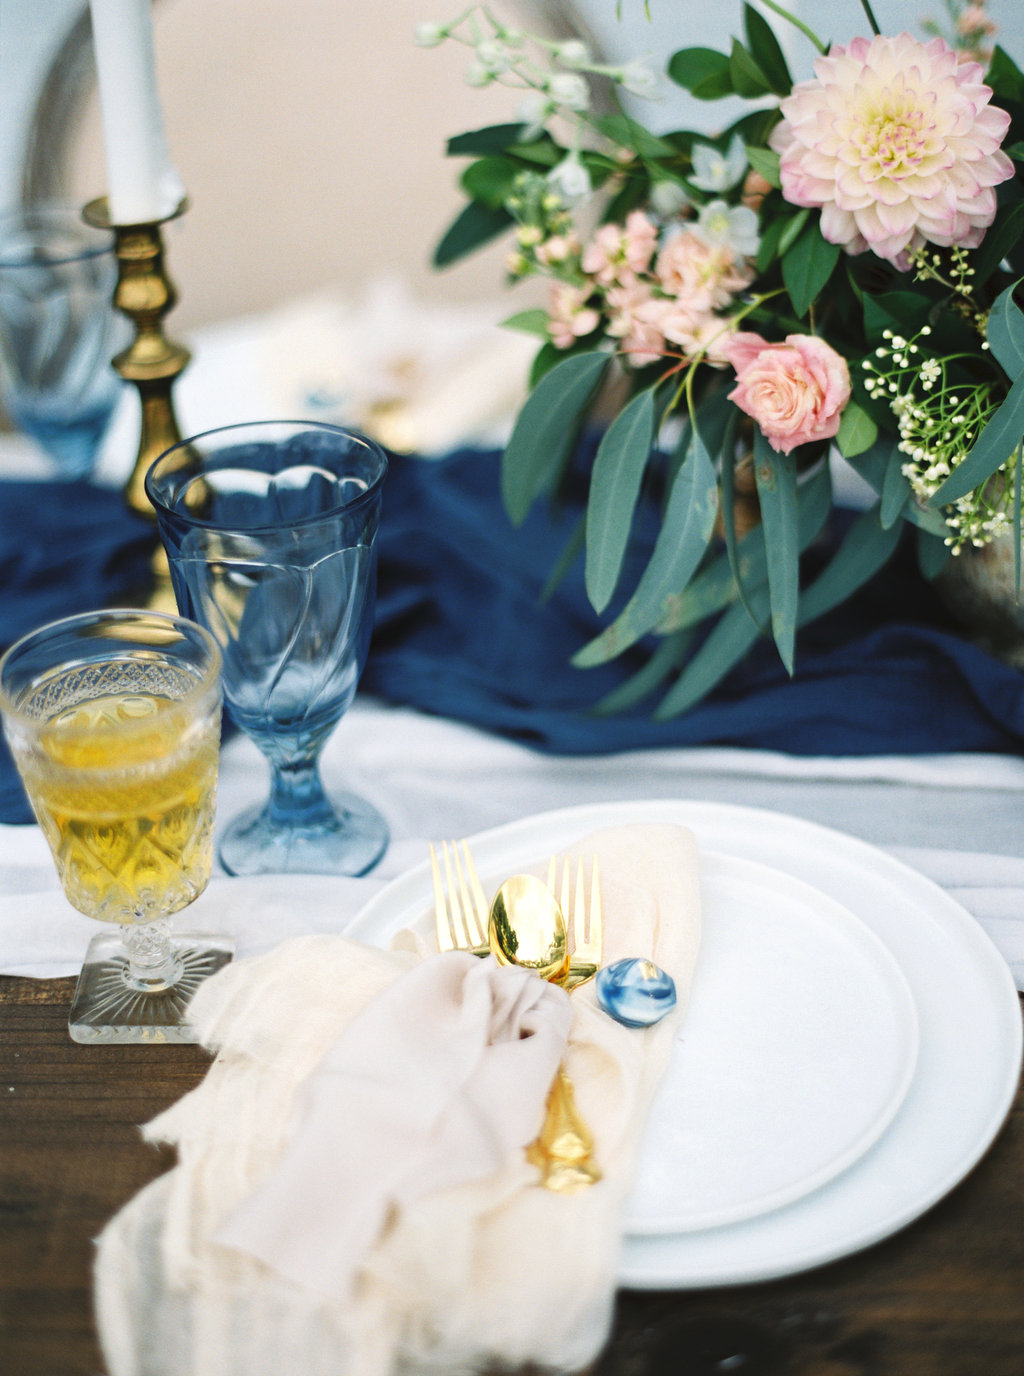 Blue & Gold Place Setting | Credit: Courtney Leigh